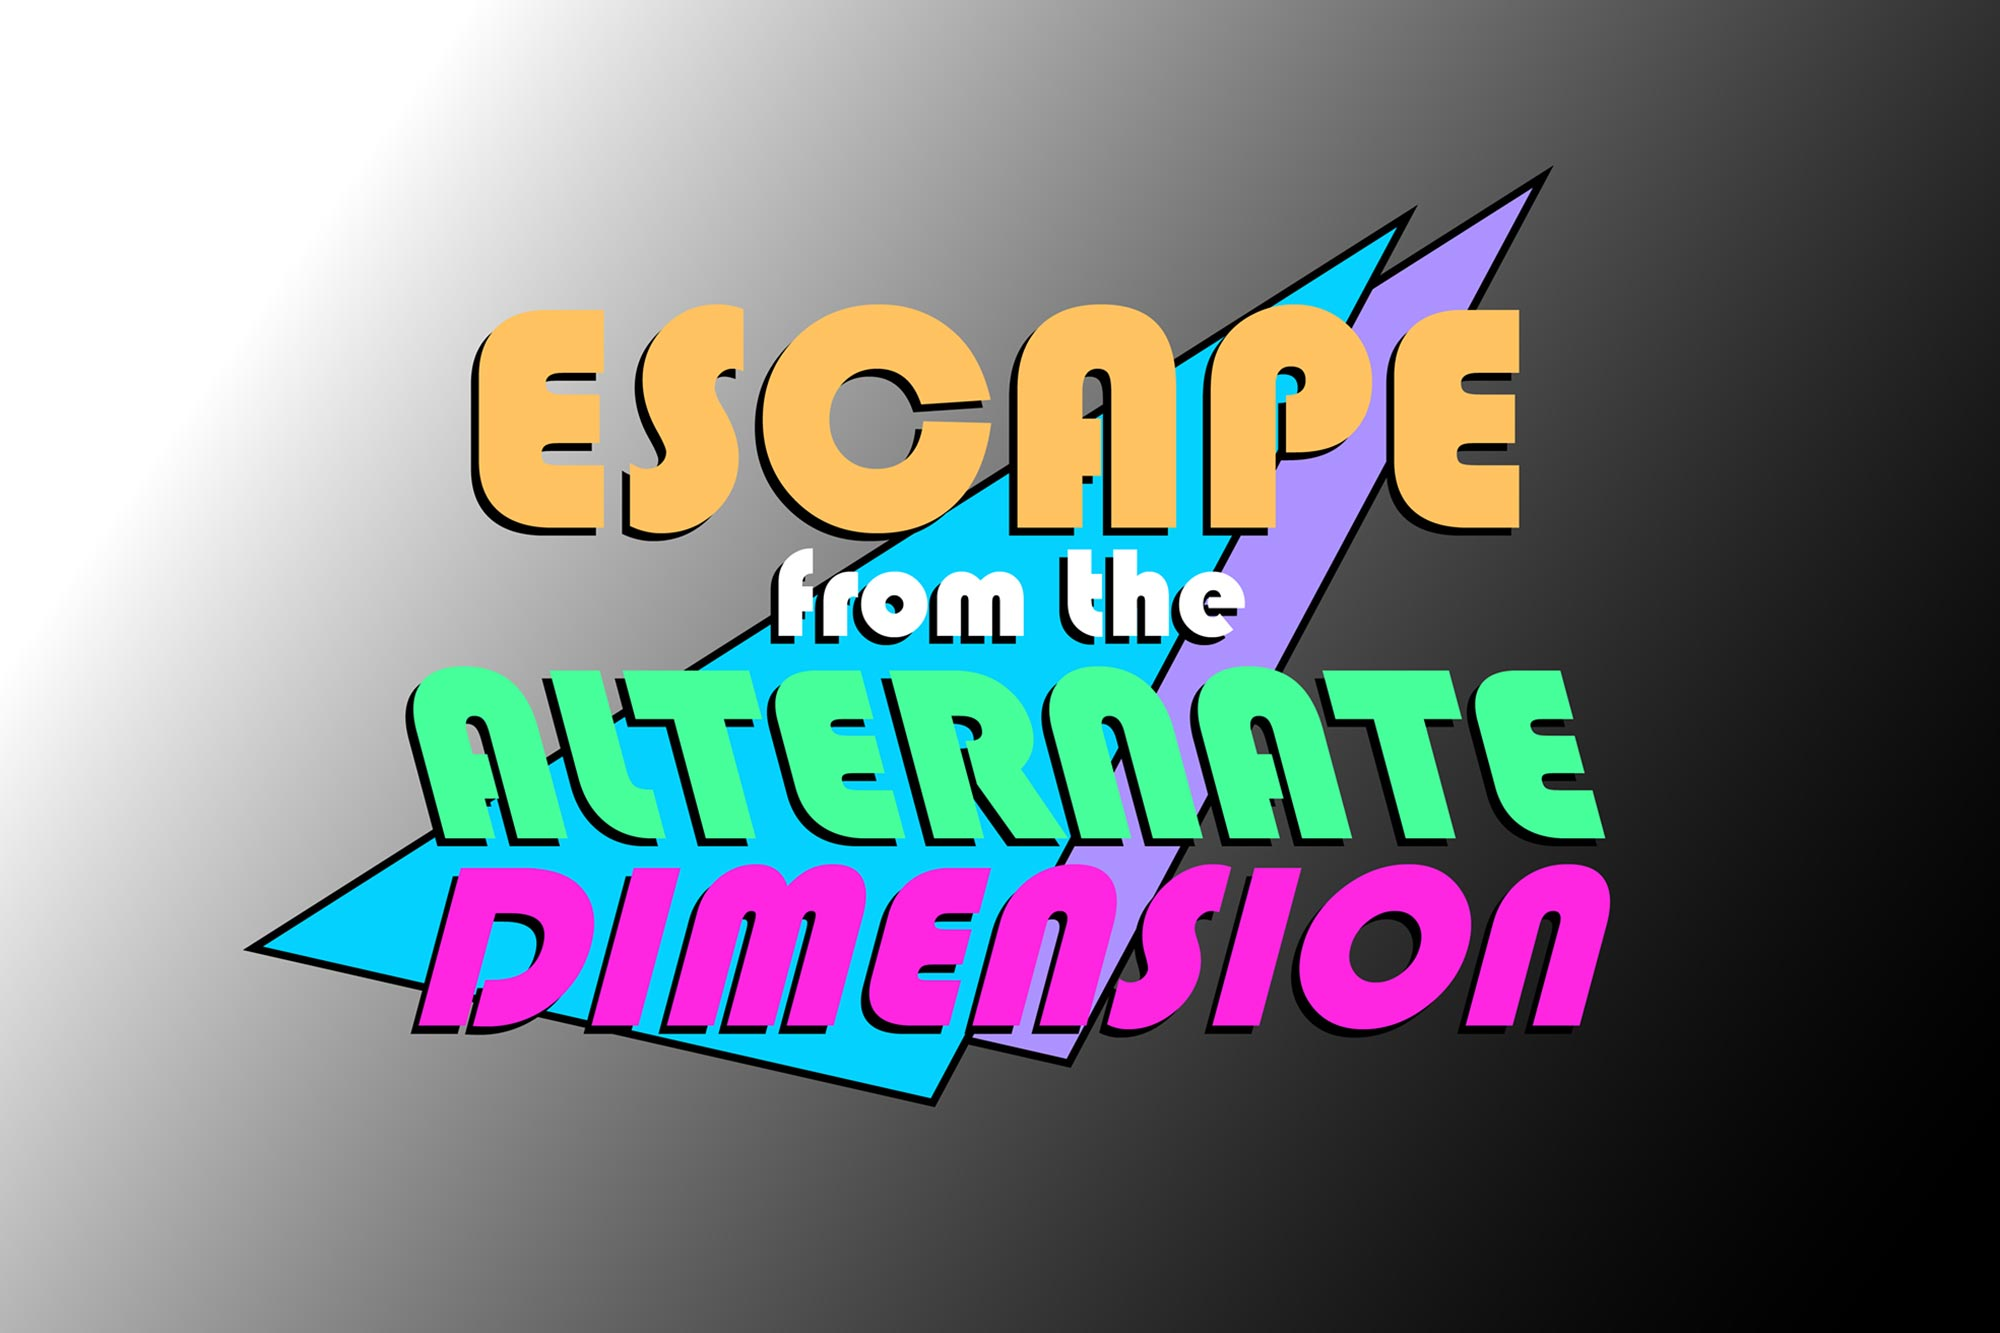 Escape from the Alternate Dimension (90's themed escape room)